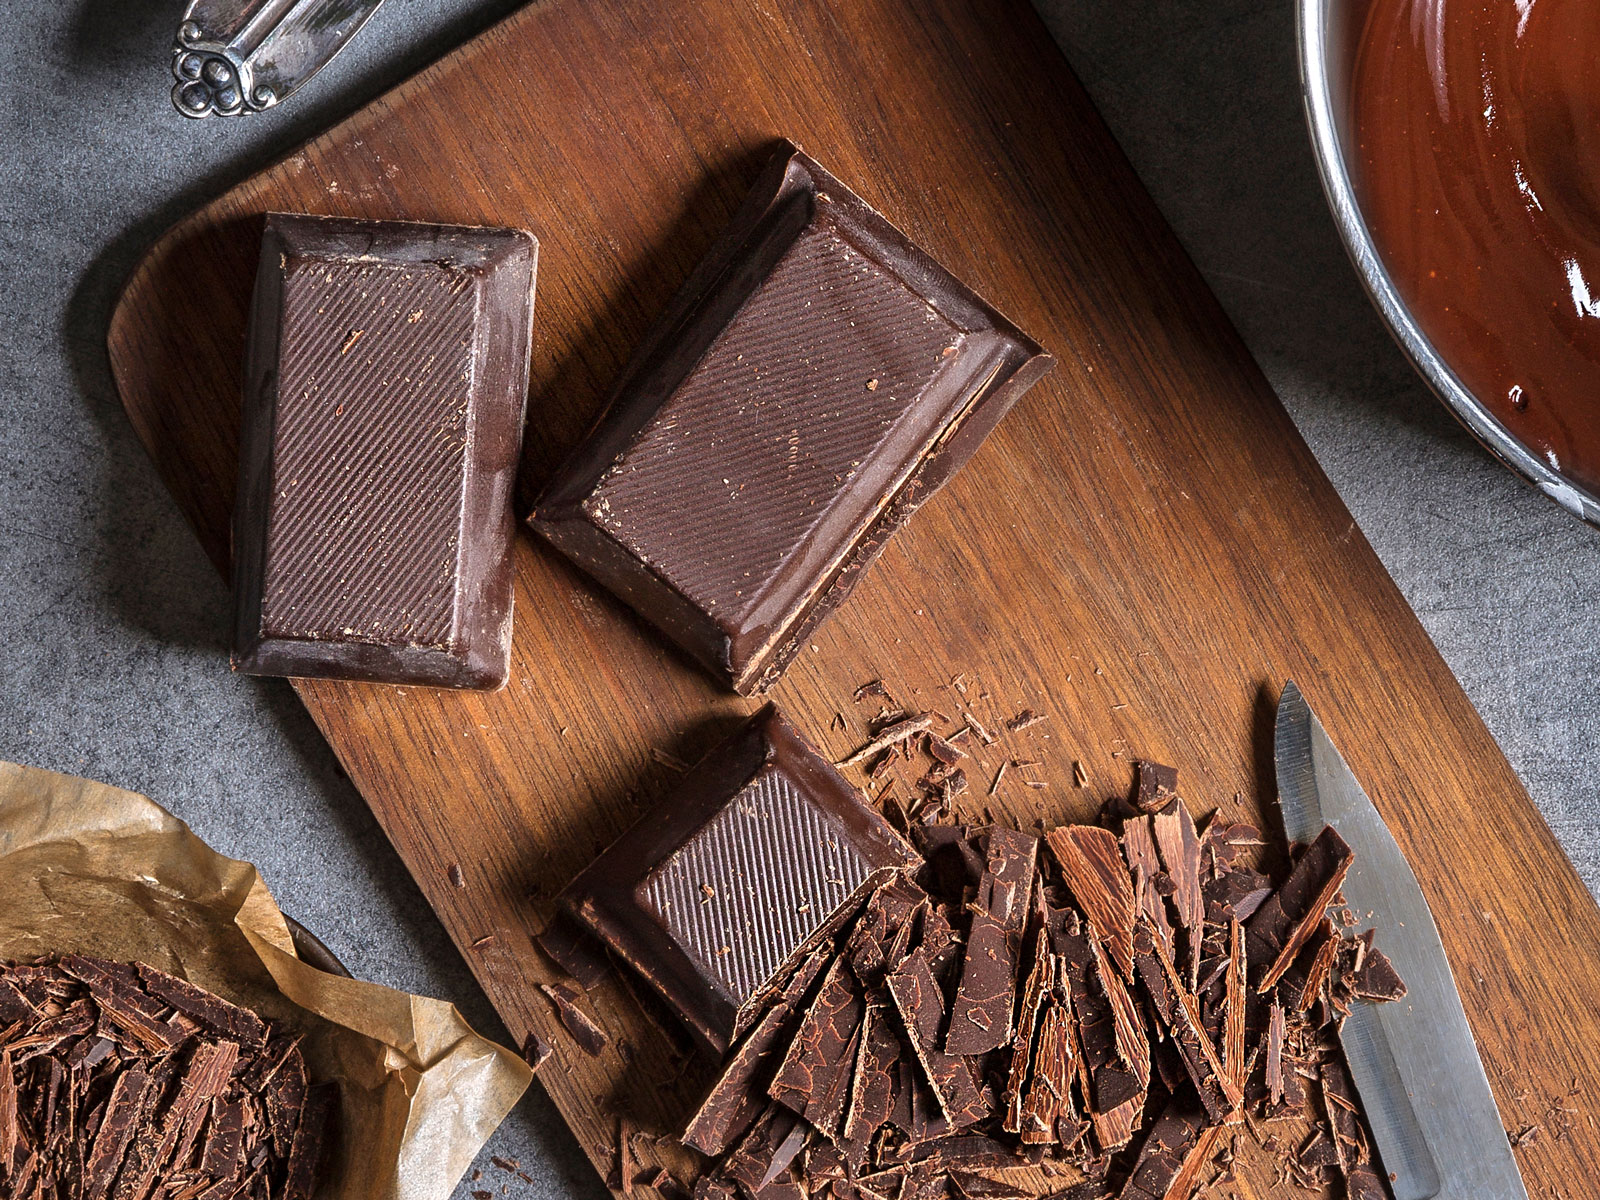 Chefs Don't Refrigerate Chocolate